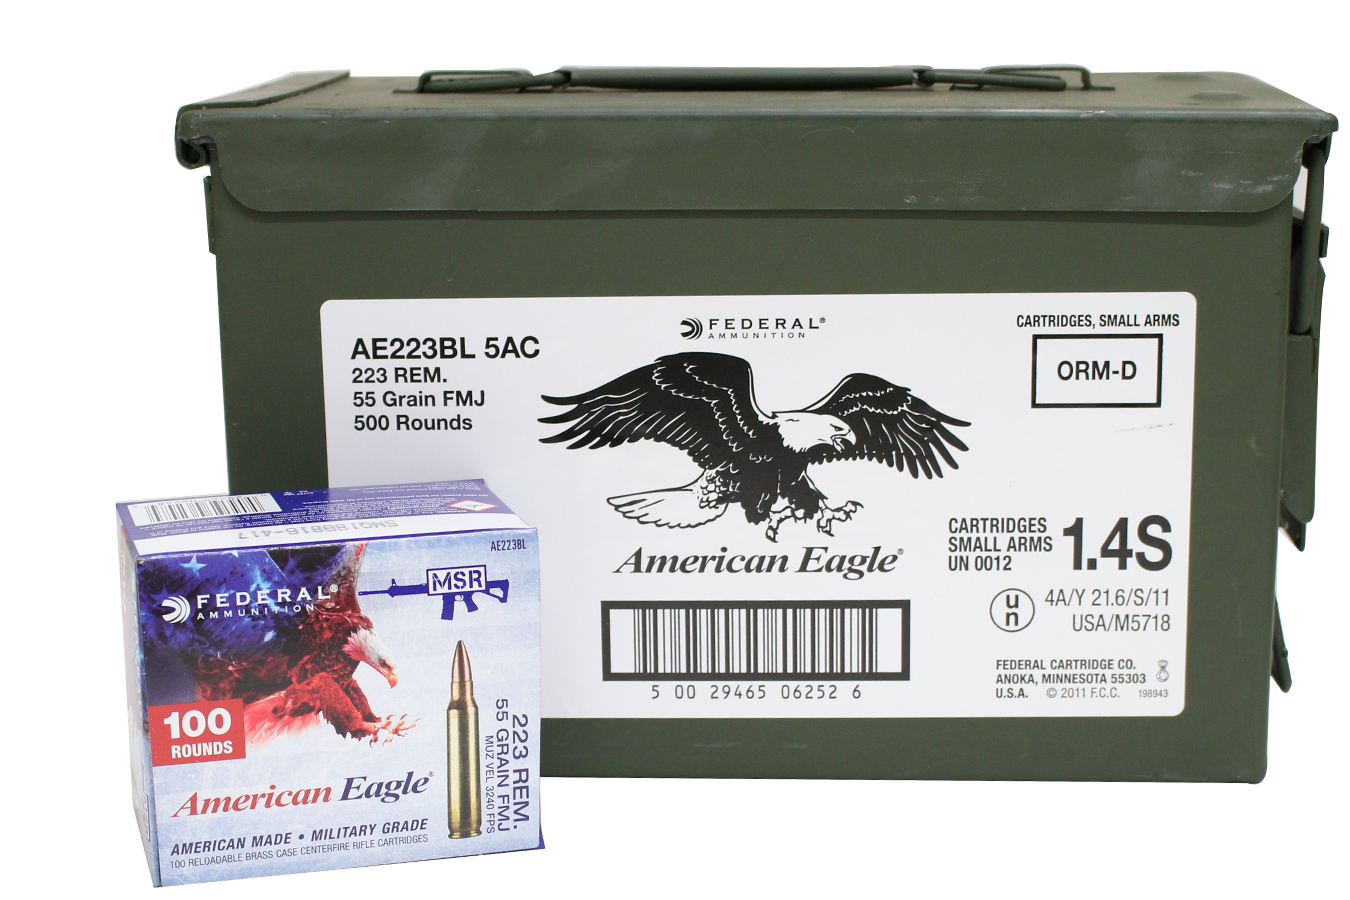 223 55 GR FMJ 500 ROUNDS WITH AMMO CAN